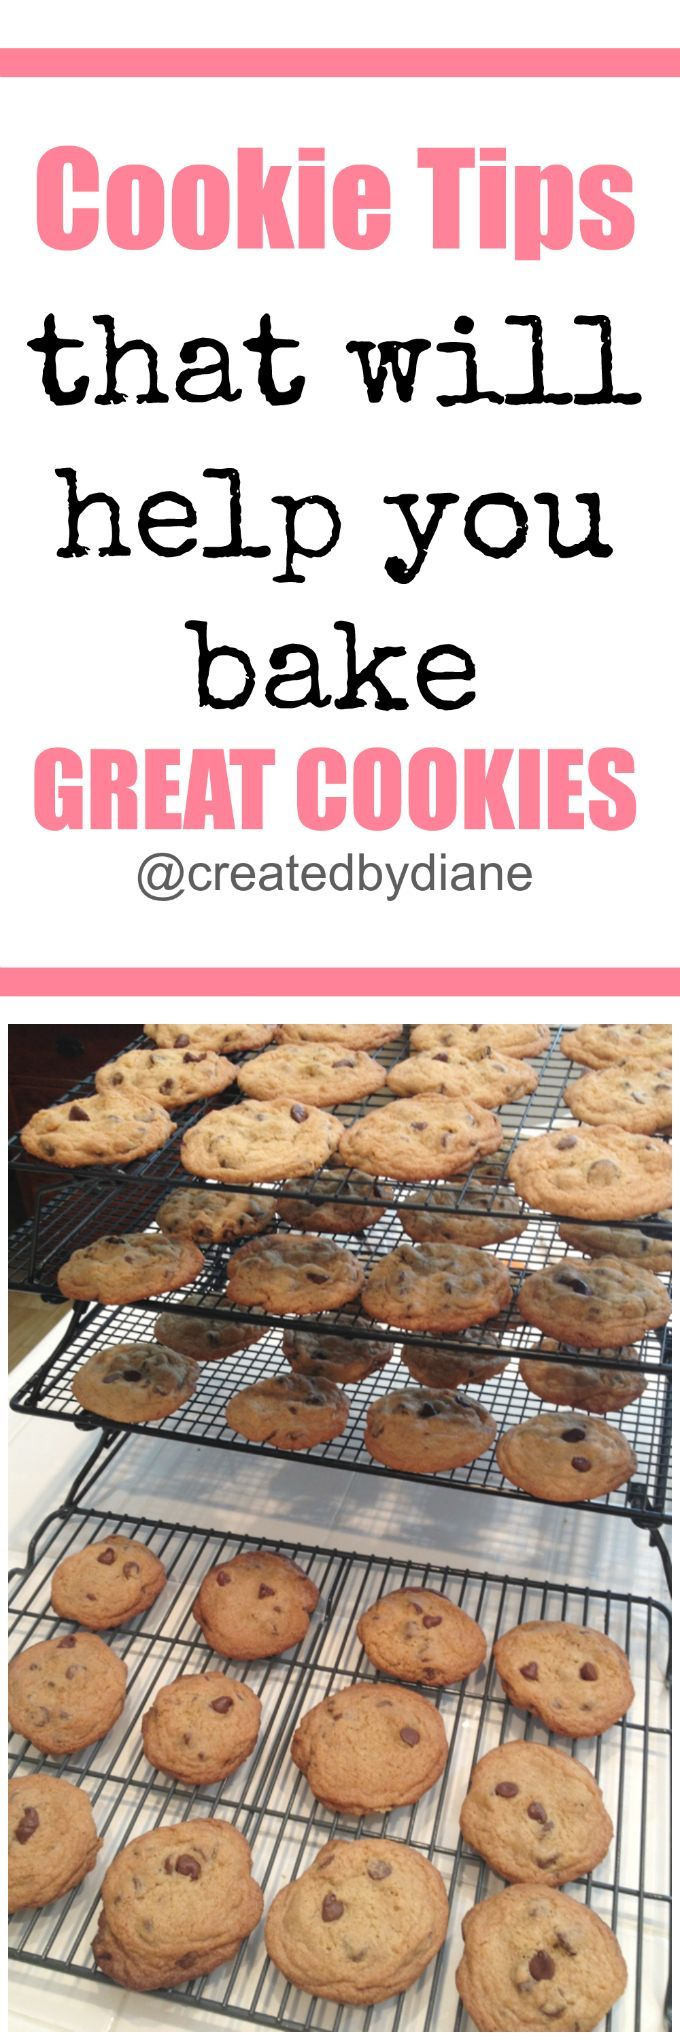 cookie-tips-THIS GUIDE IS FULL OF TIPS on how to bake up the BEST COOKIES-from-www-createdby-diane-com